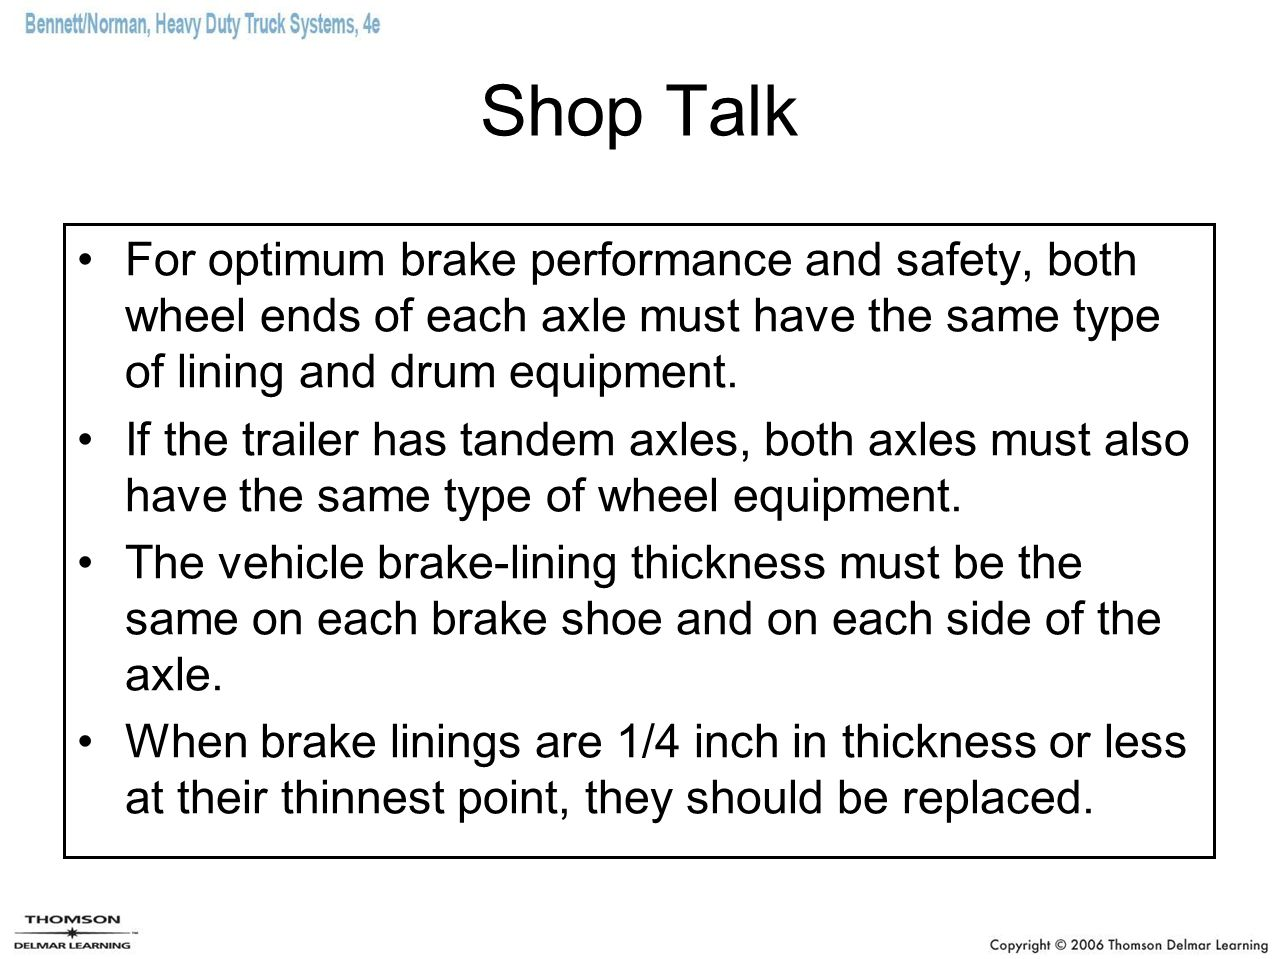 Shop Talk For optimum brake performance and safety, both wheel ends of each axle must have the same type of lining and drum equipment.